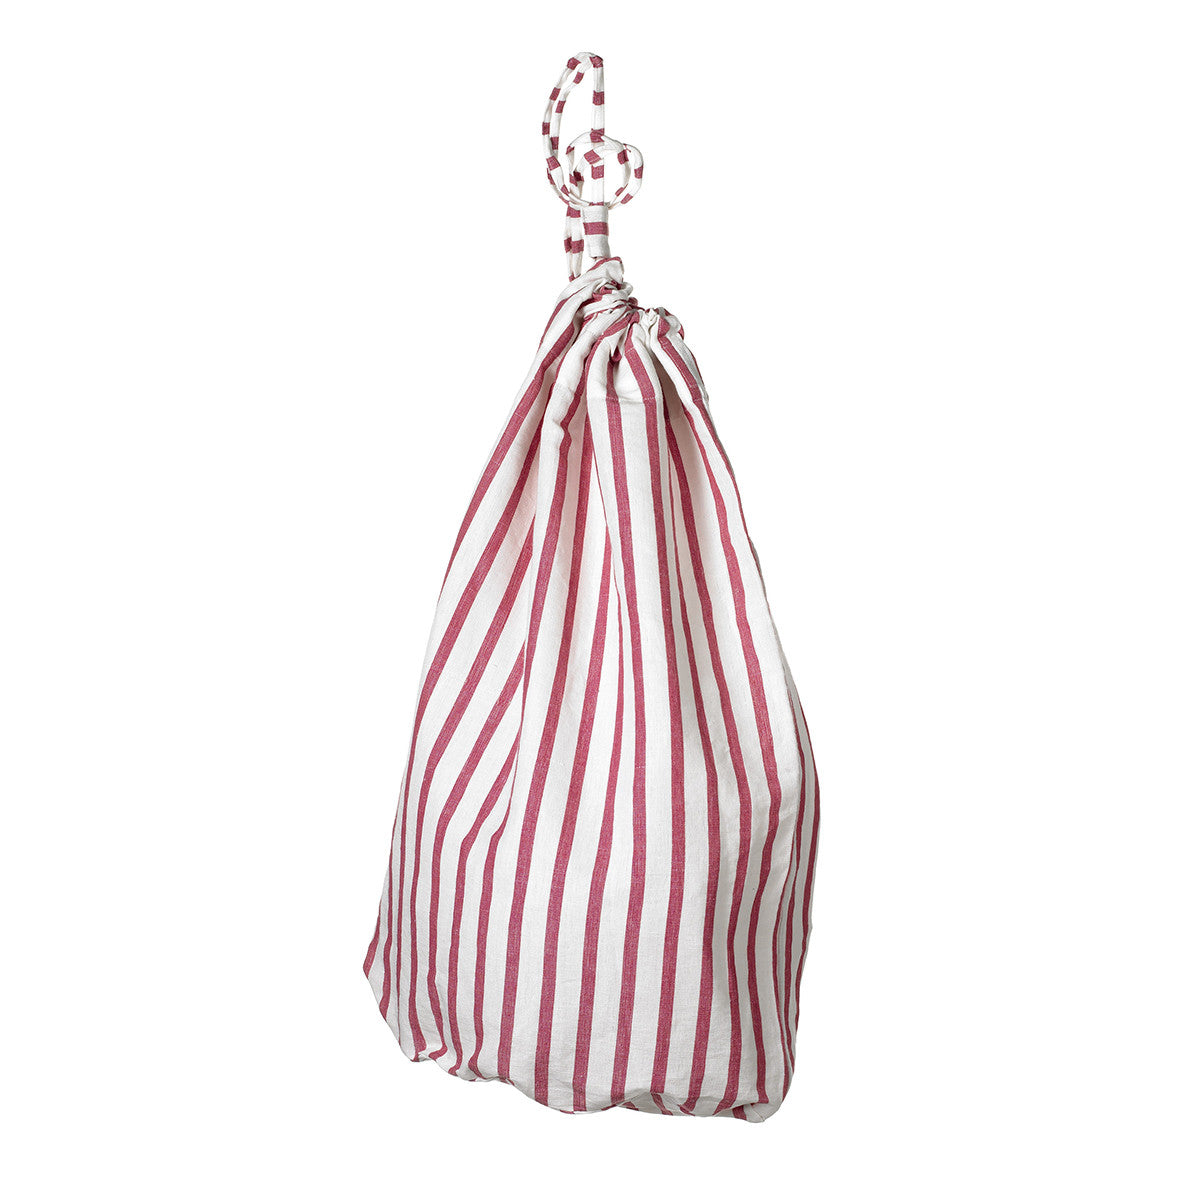 Autumn Ticking Stripe Cotton Linen Laundry & Storage Bag in Dark Heather Pink